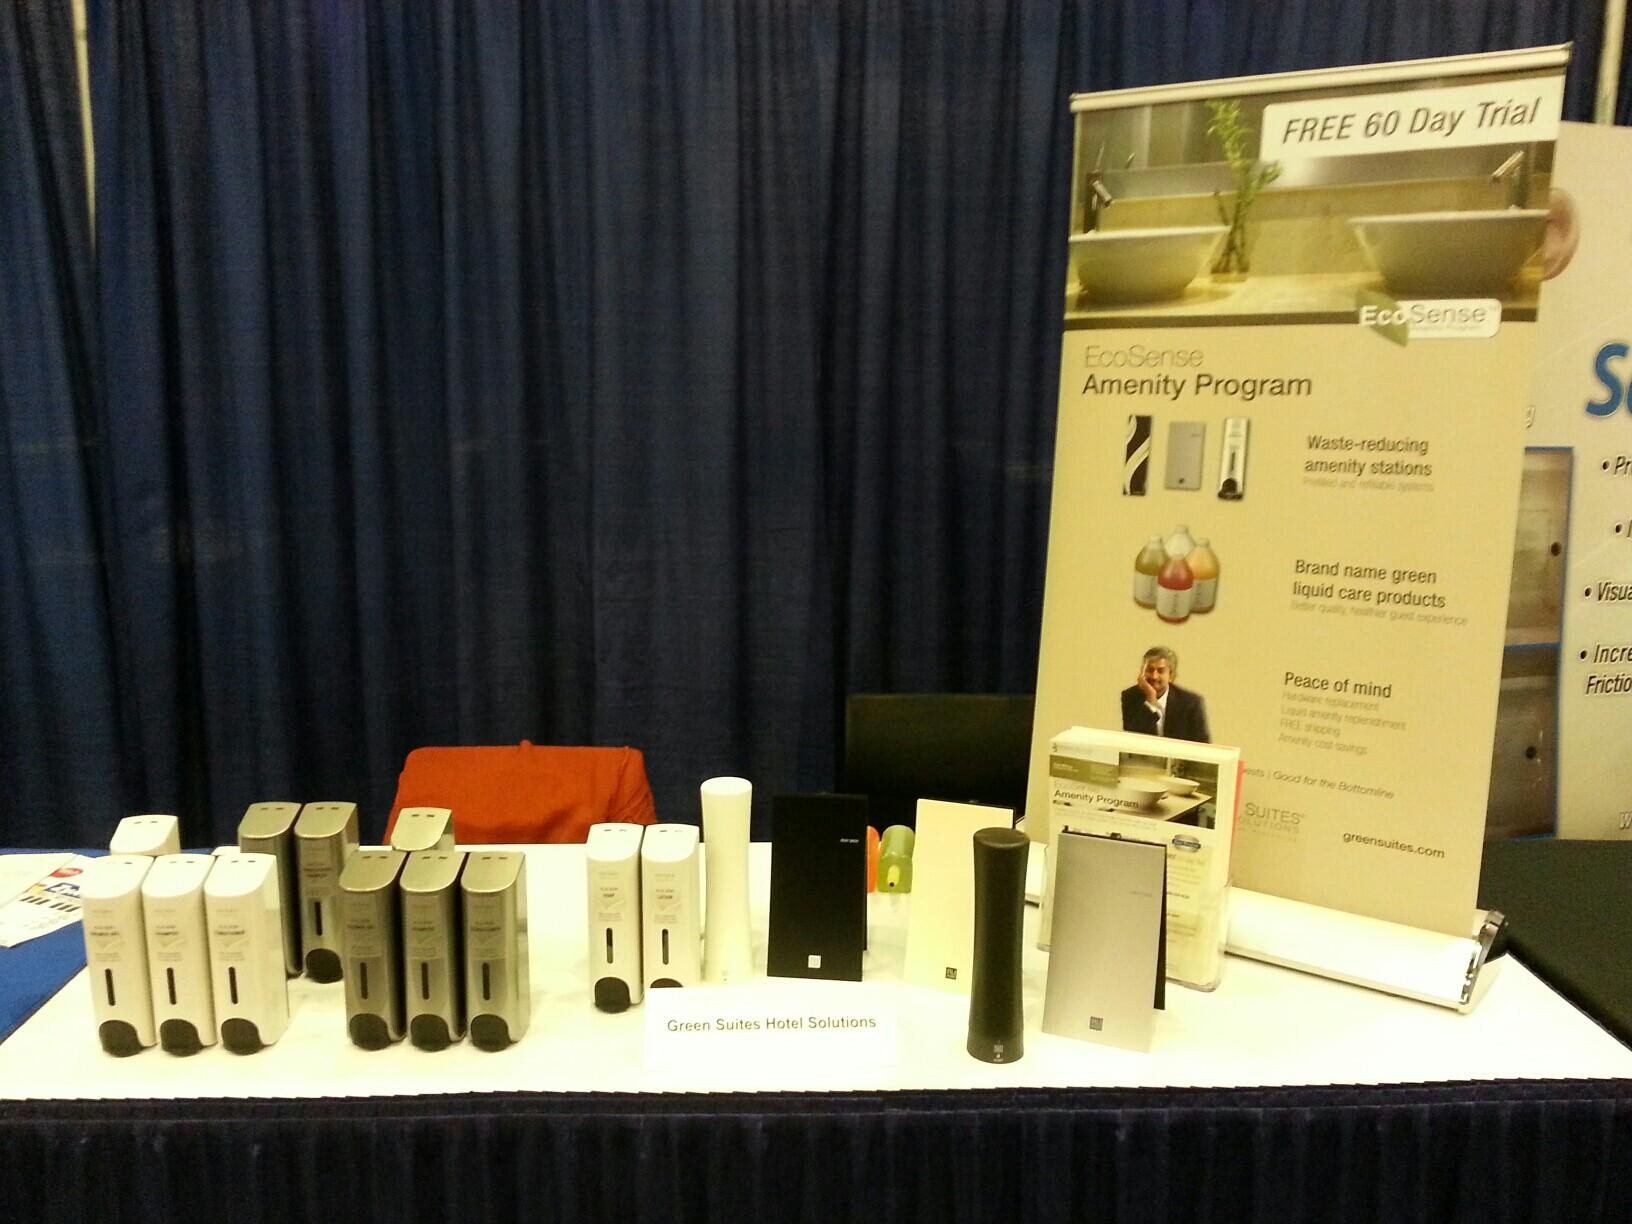 Banner and flyers at the tradeshow